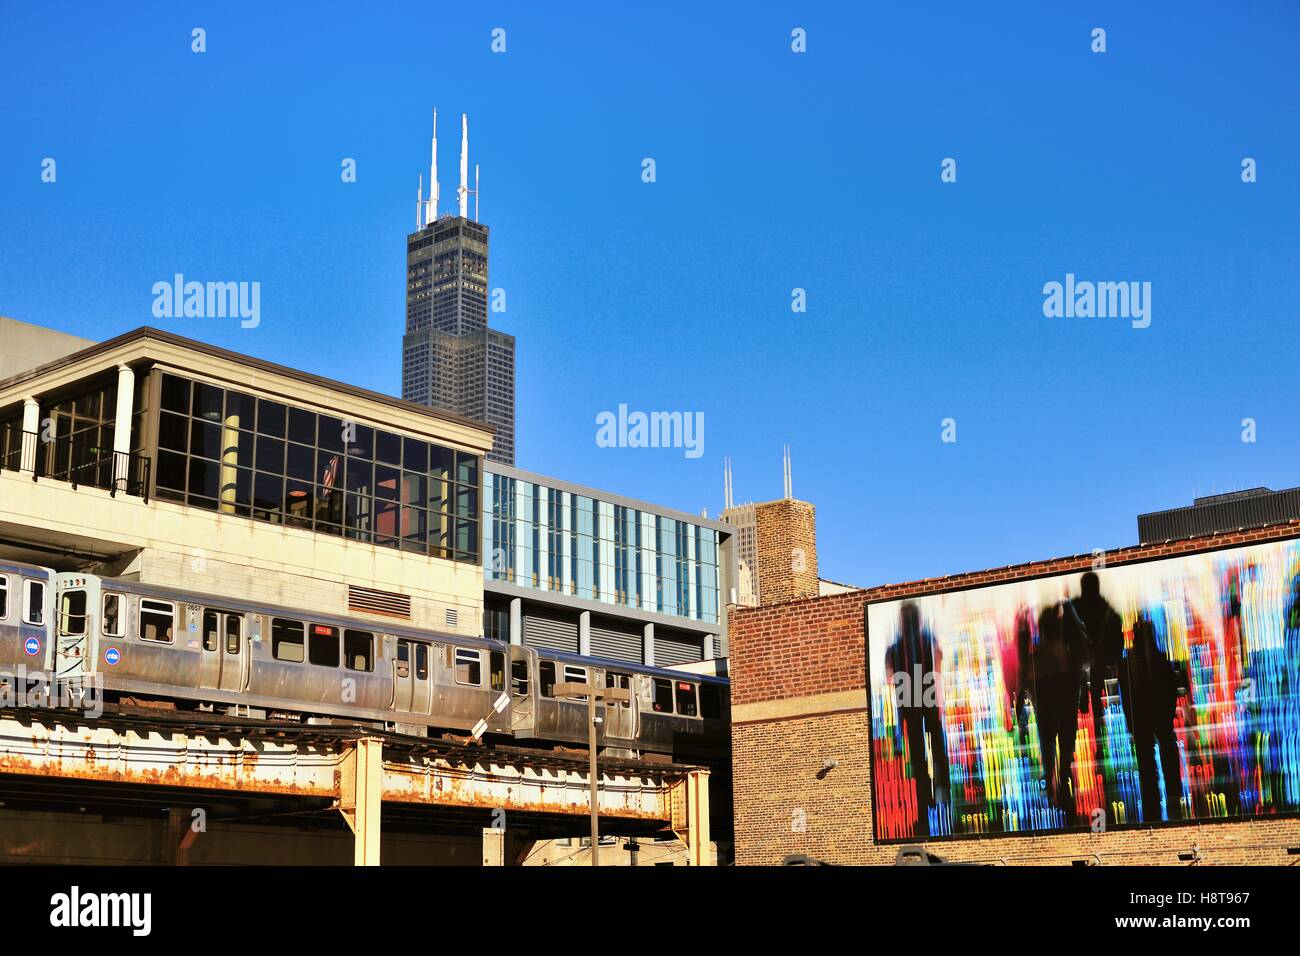 The Willis Tower (formerly Sears Tower) towering over the south Loop area of Chicago as a CTA rapid transit train - Stock Image